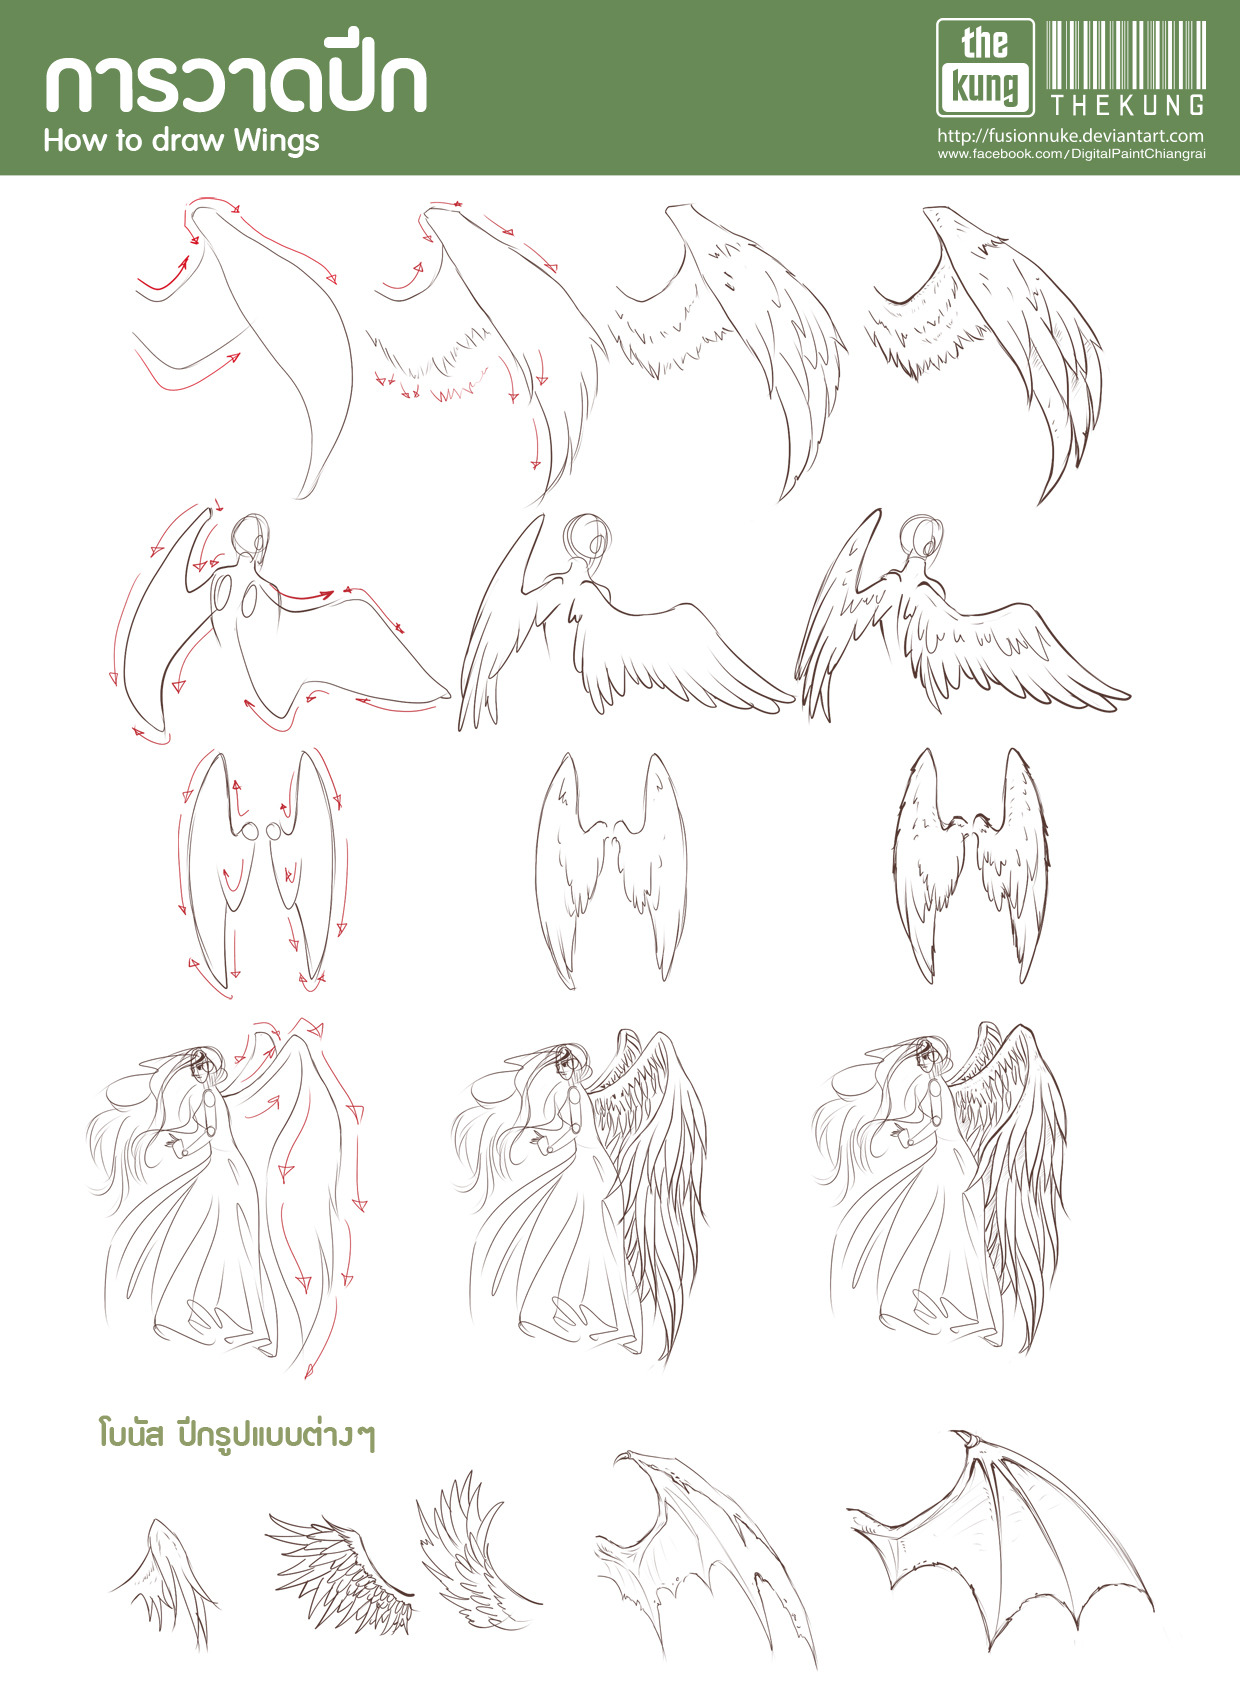 1240x1692 How To Draw Wing] By [Fusionnuke] How To Draw Draw